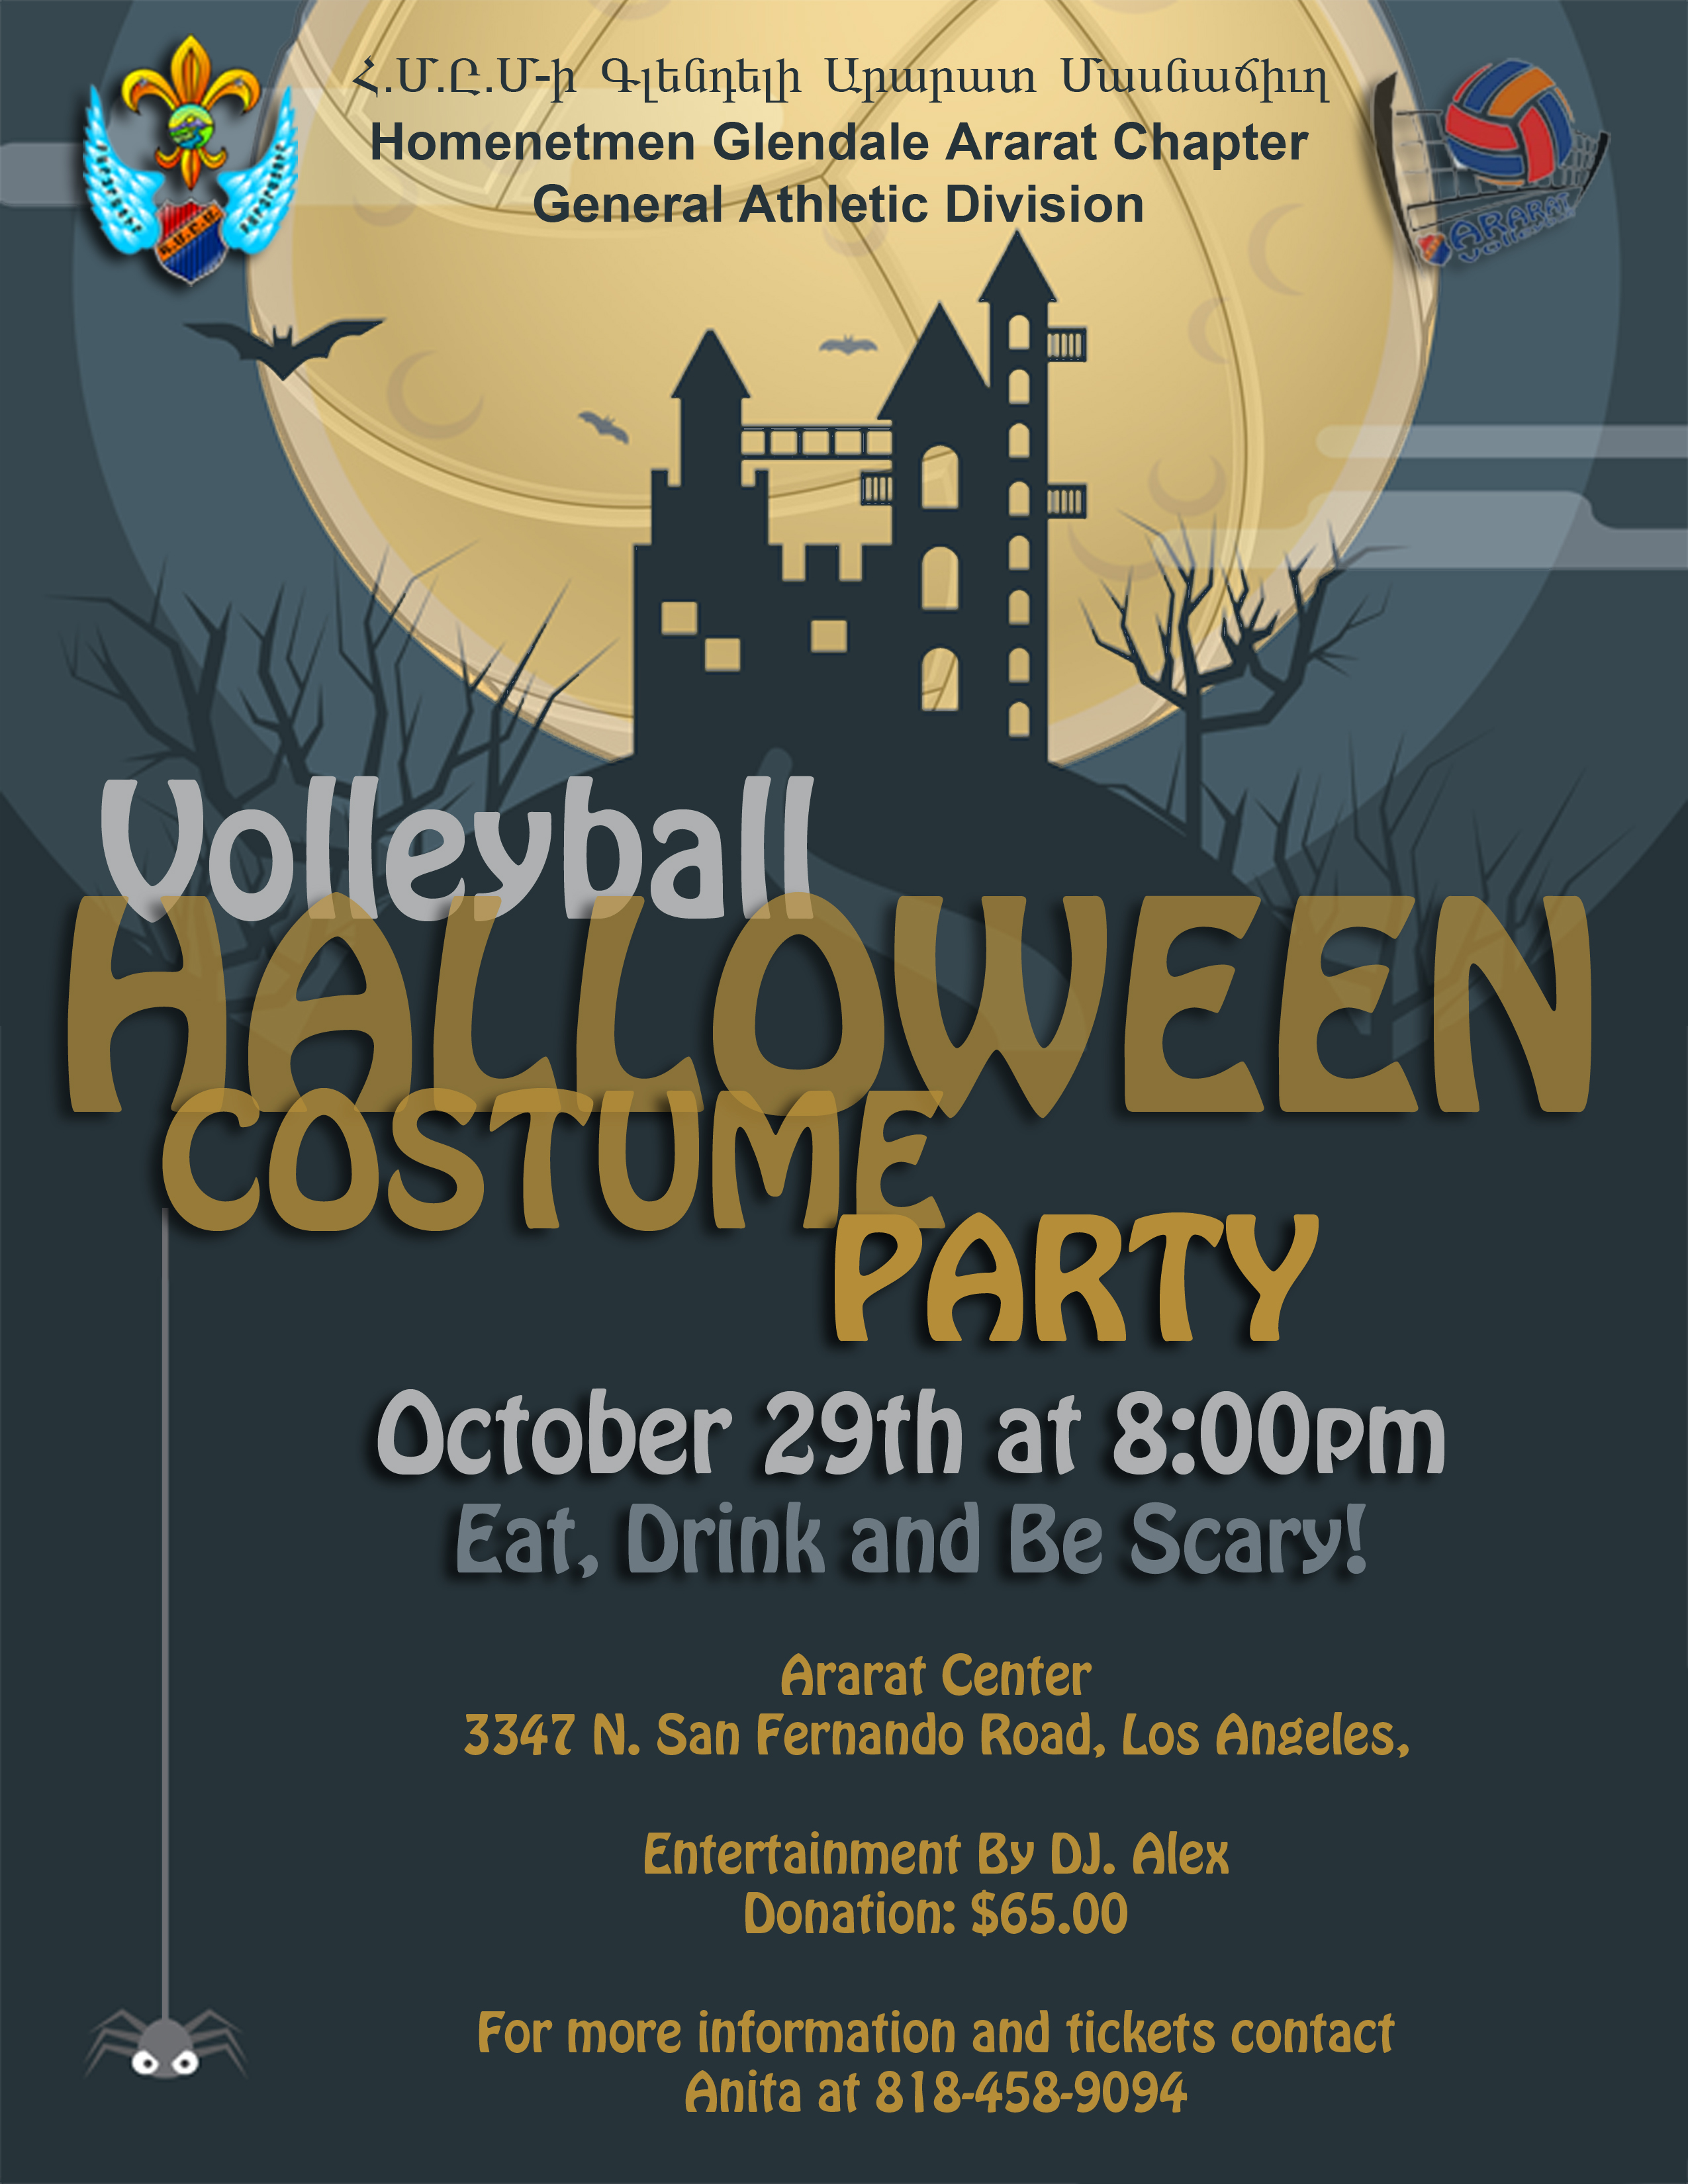 Volleyball Halloween Costume Party